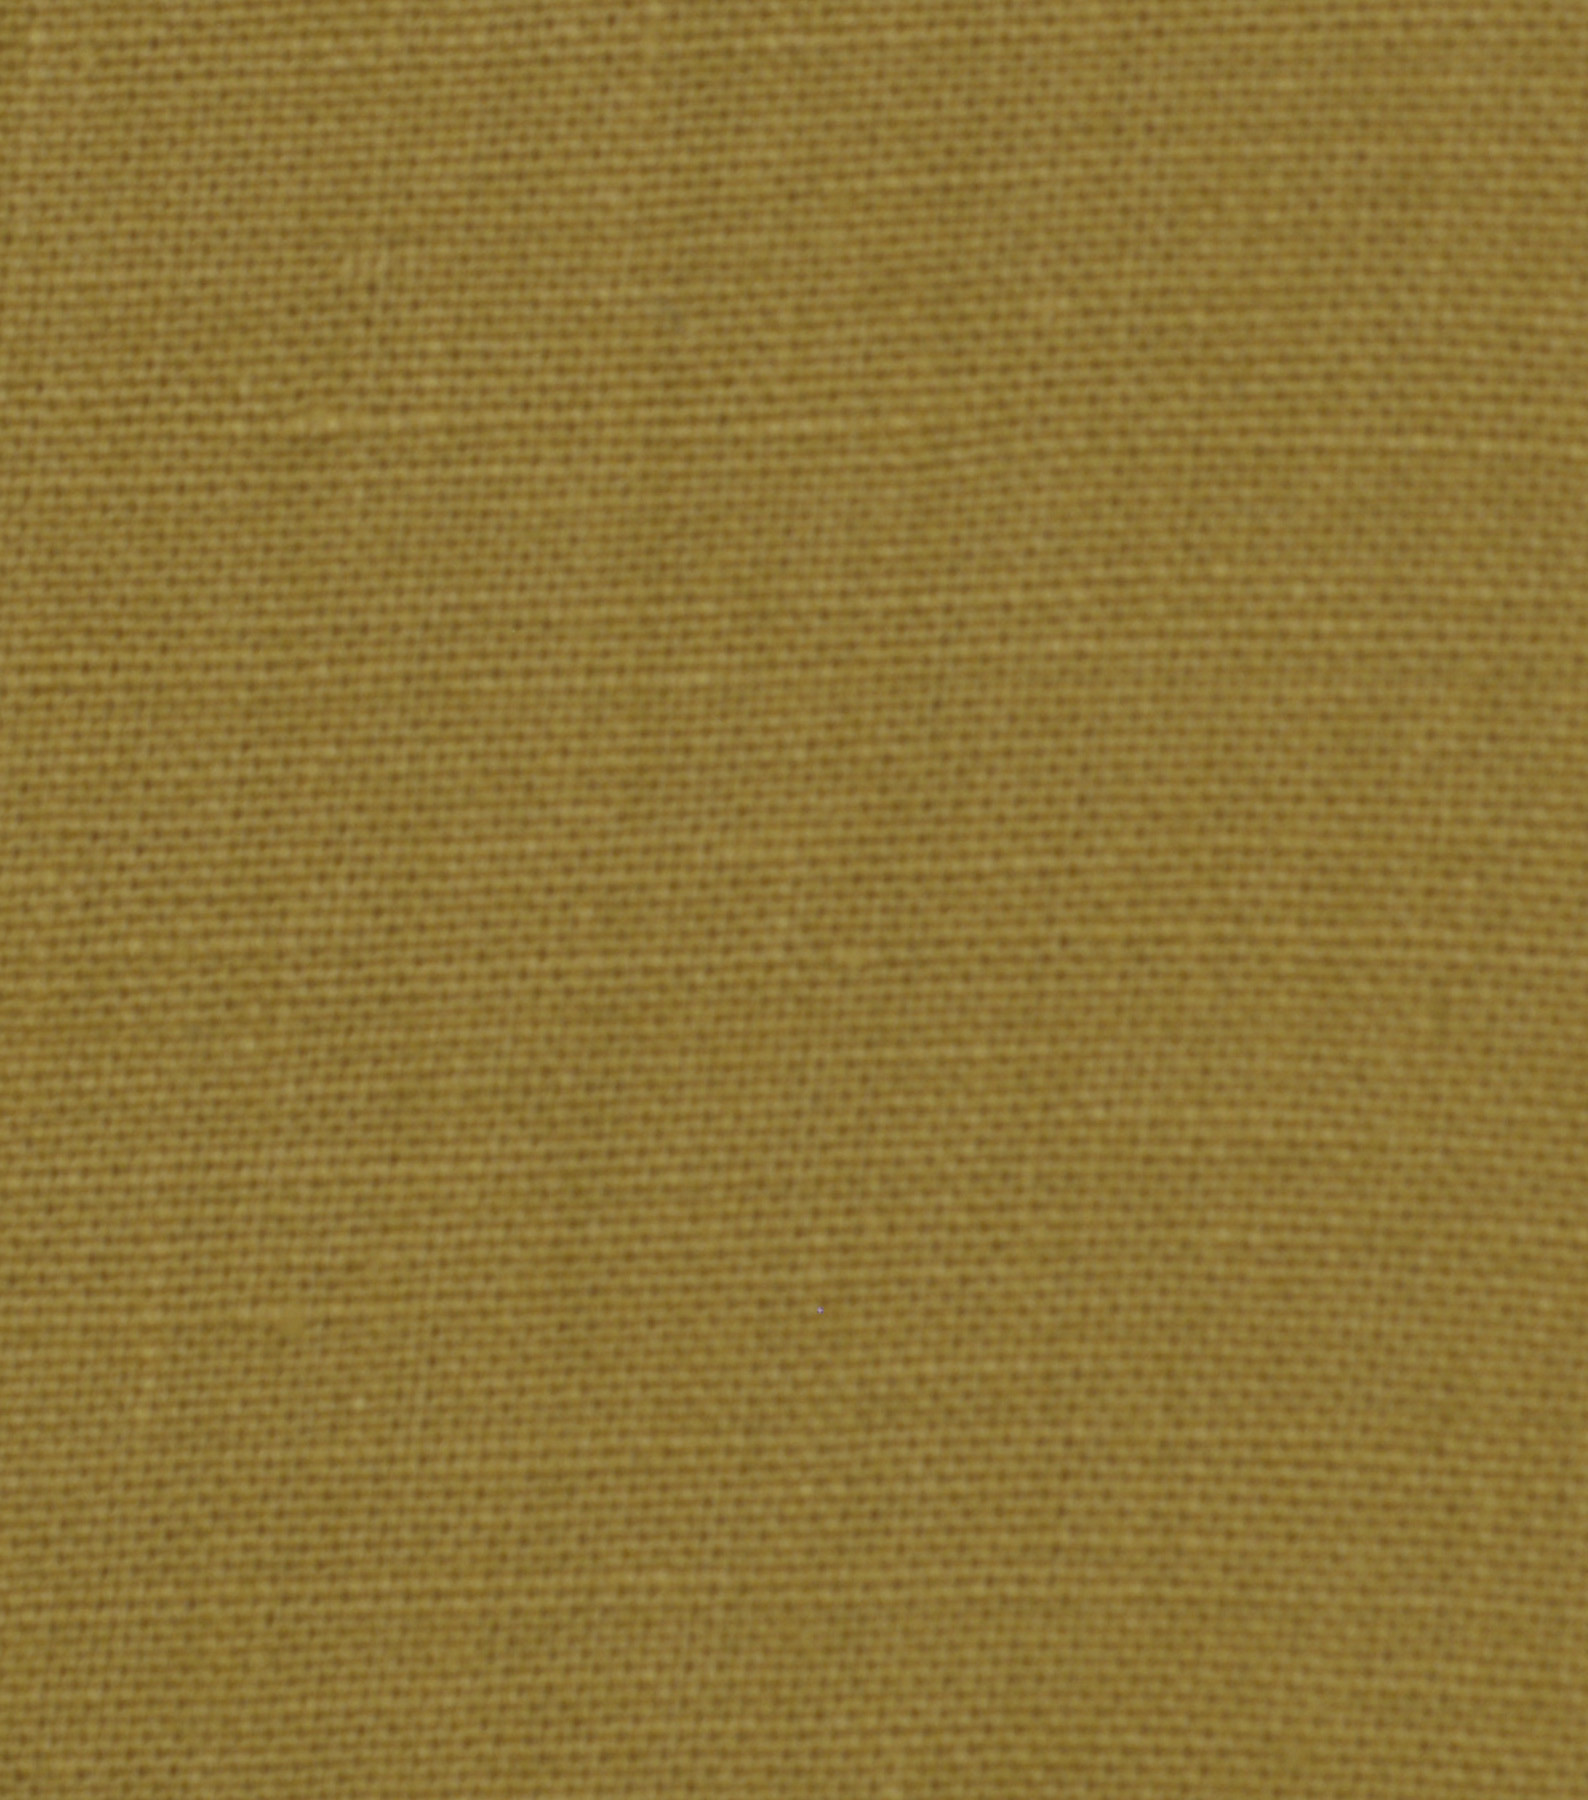 Home Decor 8\u0022x8\u0022 Fabric Swatch-Solid Fabric Signature Series Kilrush Wicker